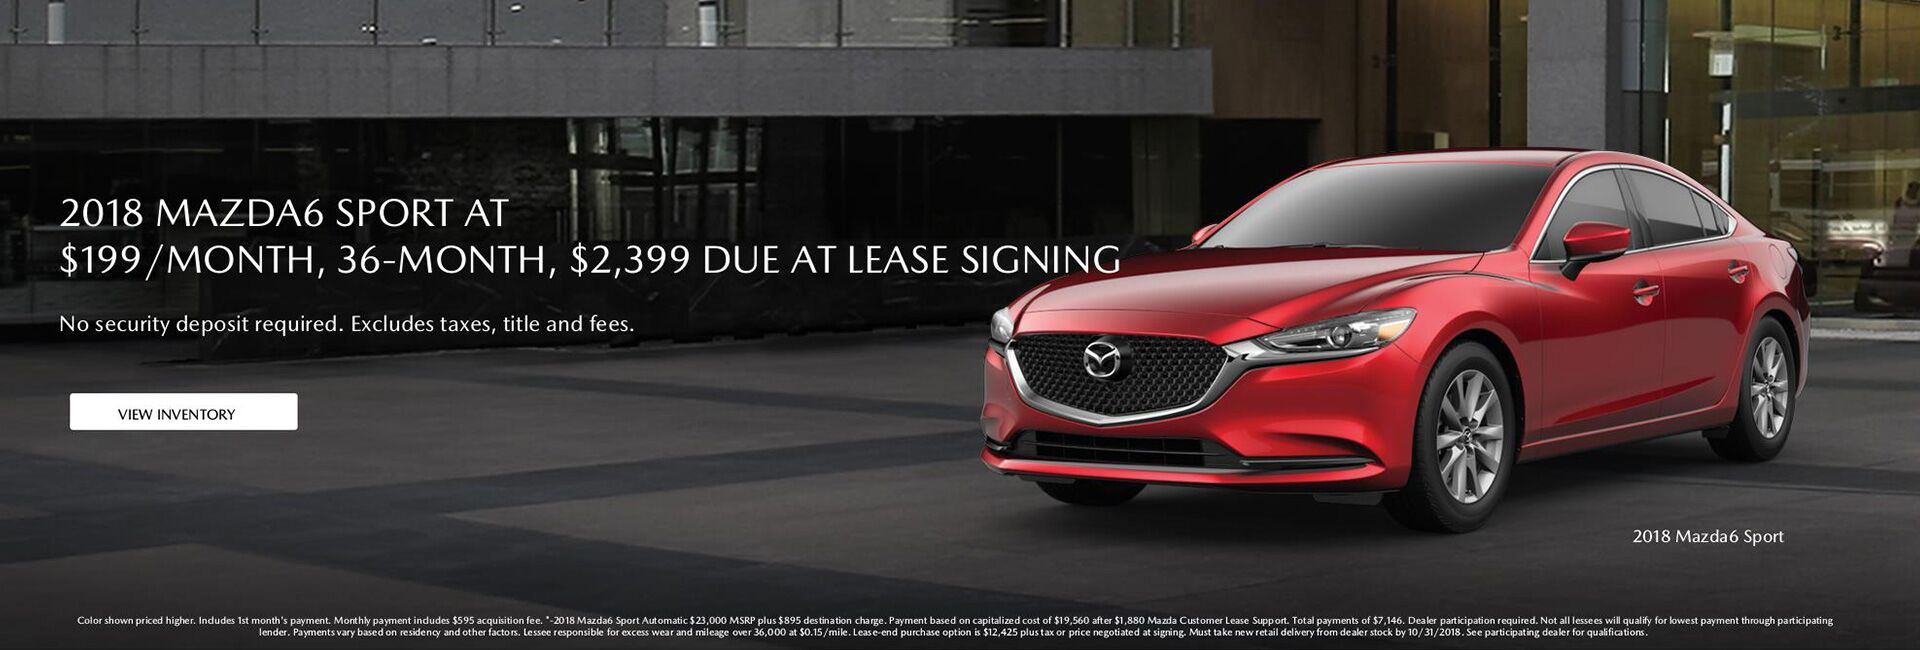 Superior Mazda Dealership Irvine CA | Used Cars Tuttle Click Mazda